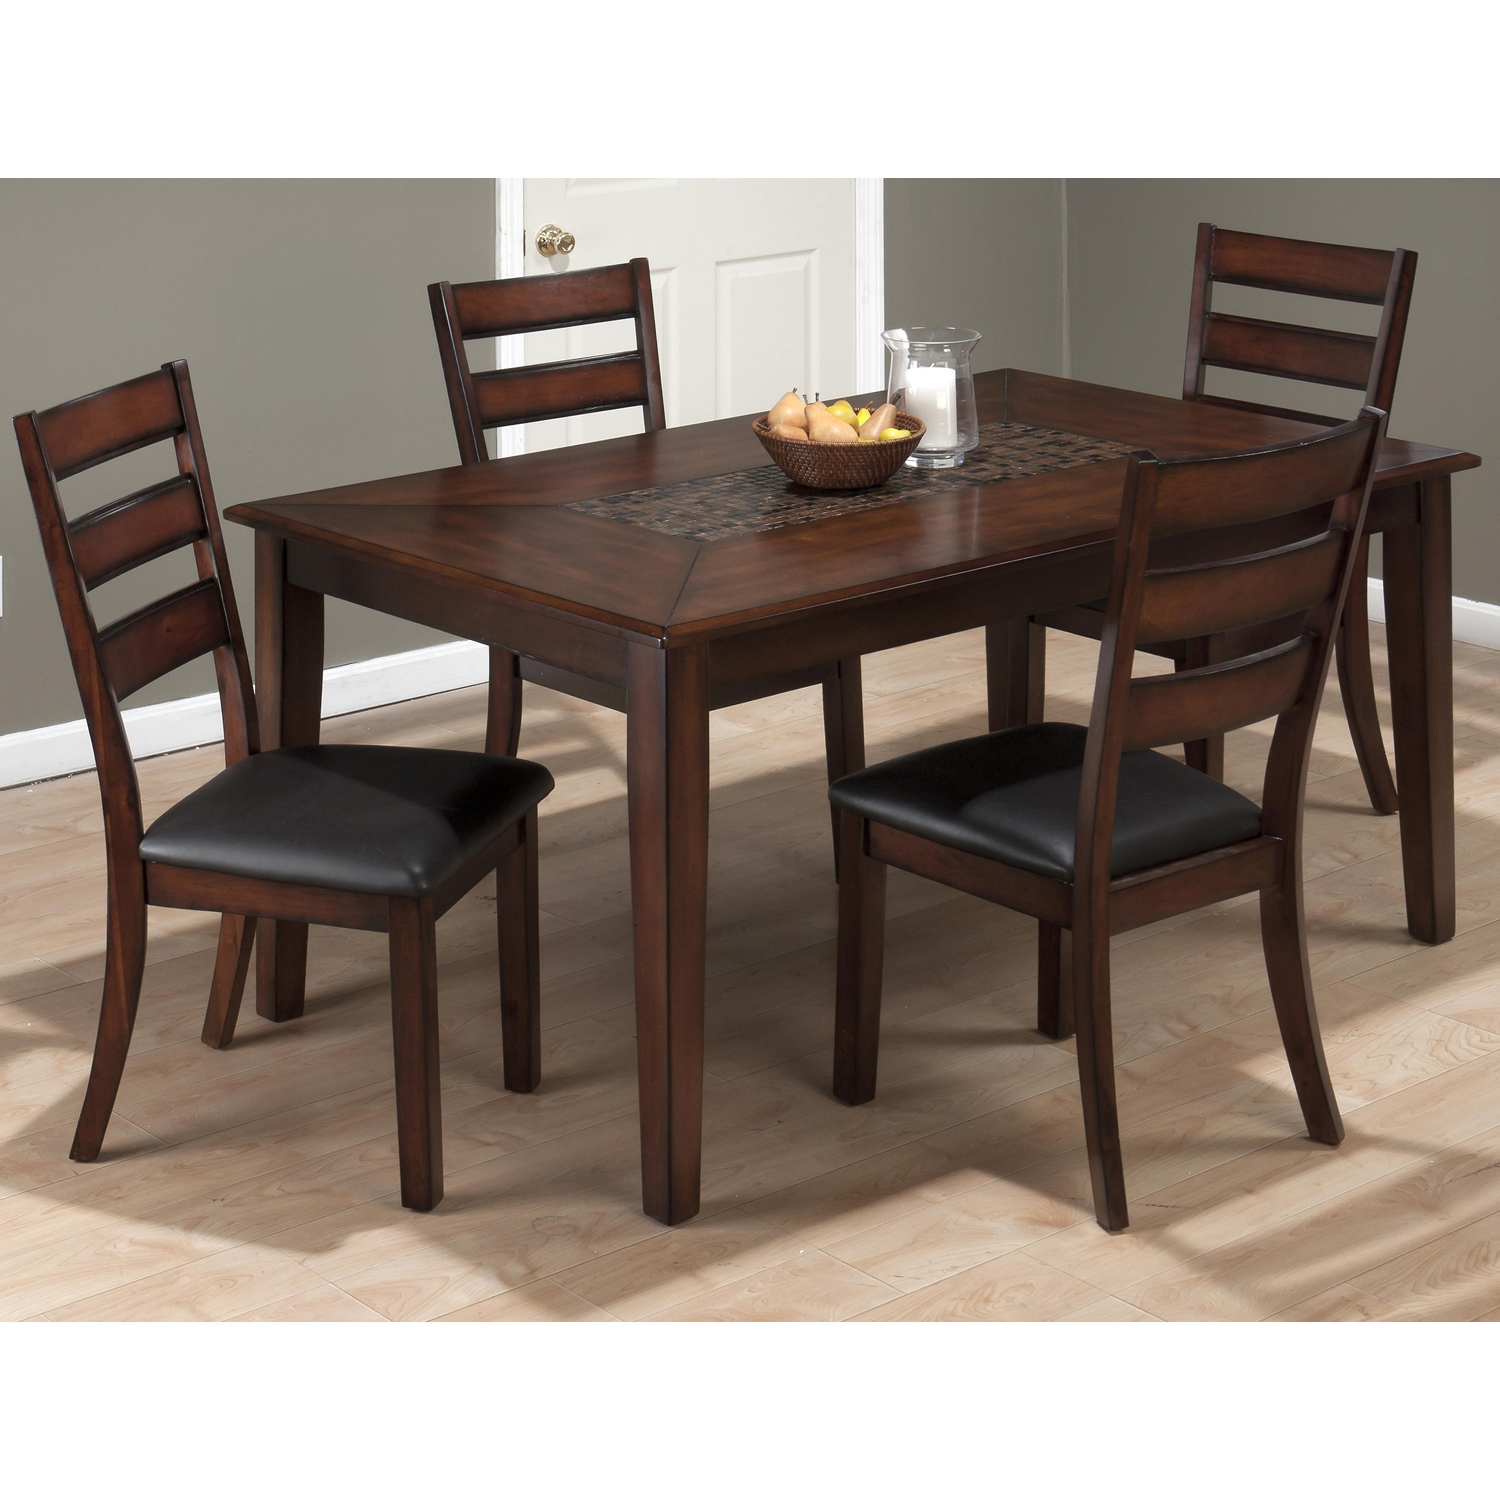 Baroque 5 Pieces Dining Set - Mosaic Inlay, Brown - JOFR-697-64-923KD-SET